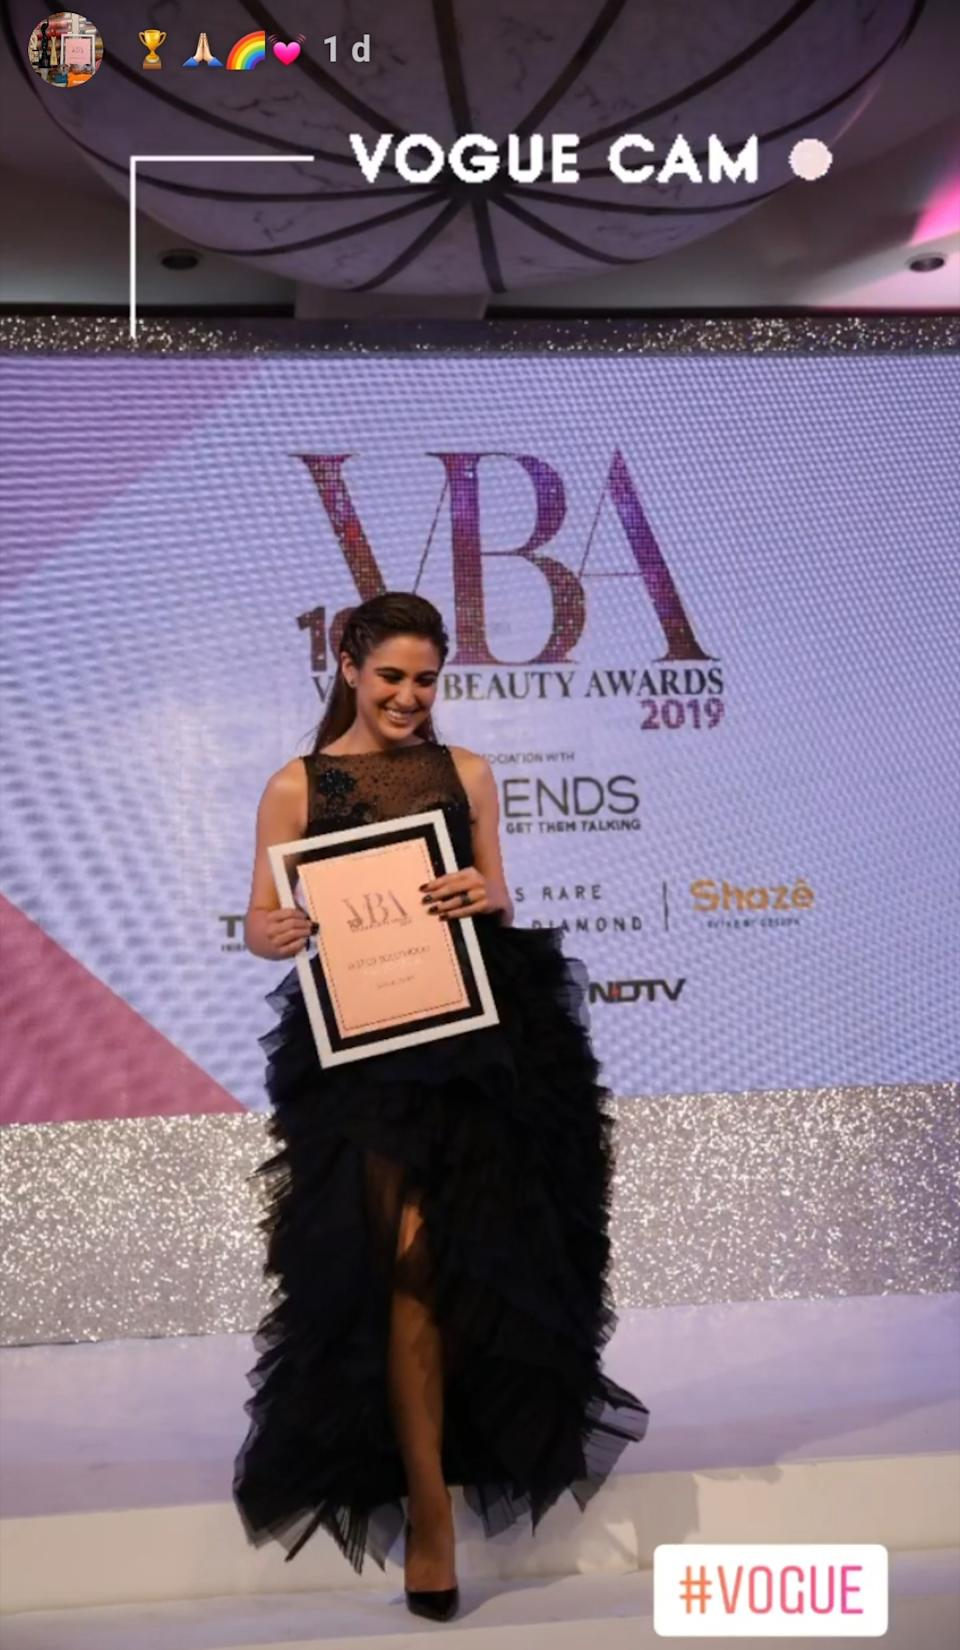 A vision in her midnight-blue Shriya Som lace ensemble, the 24-year-old took to the red carpet of Vogue Beauty Awards in matchless panache. Cascading an aura of royalty, not only did she light up the event with her presence but returned home with the trophy for <strong>'Fresh Face Of The Year</strong>' from her debut appearance at the award night.